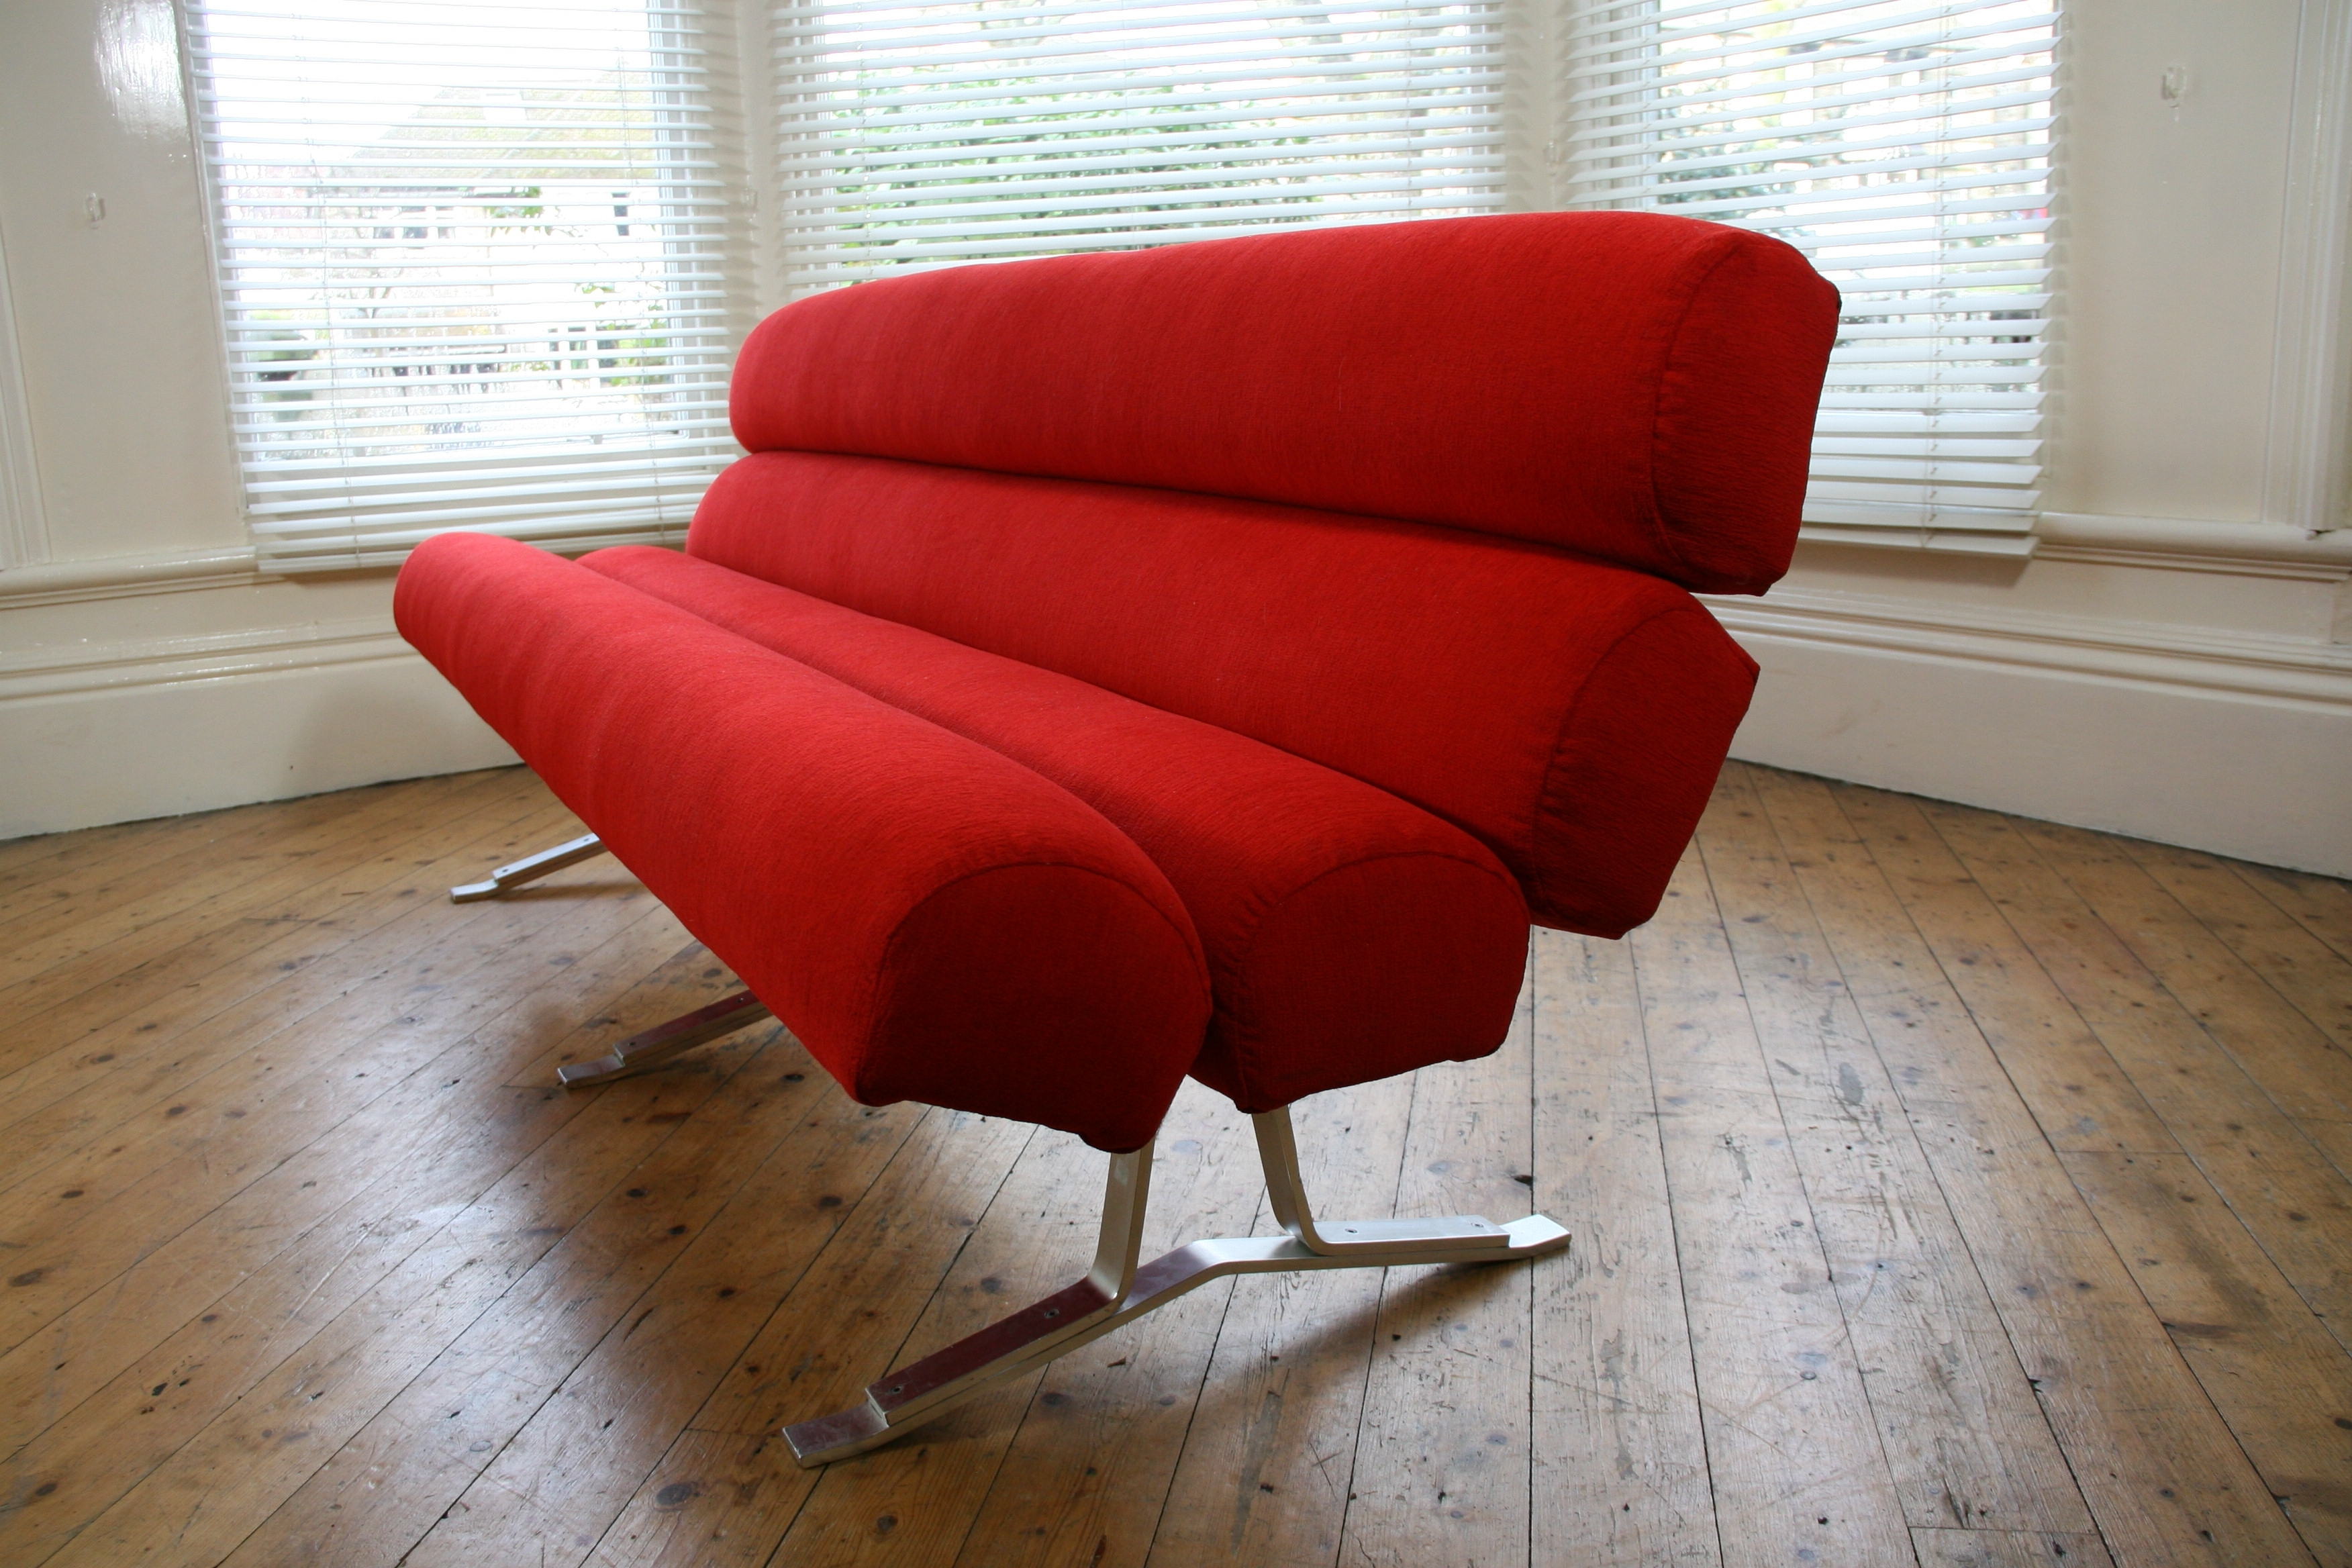 Preferred Retro Sofas And Chairs With Regard To Modern Style Furniture Retro With (View 6 of 15)